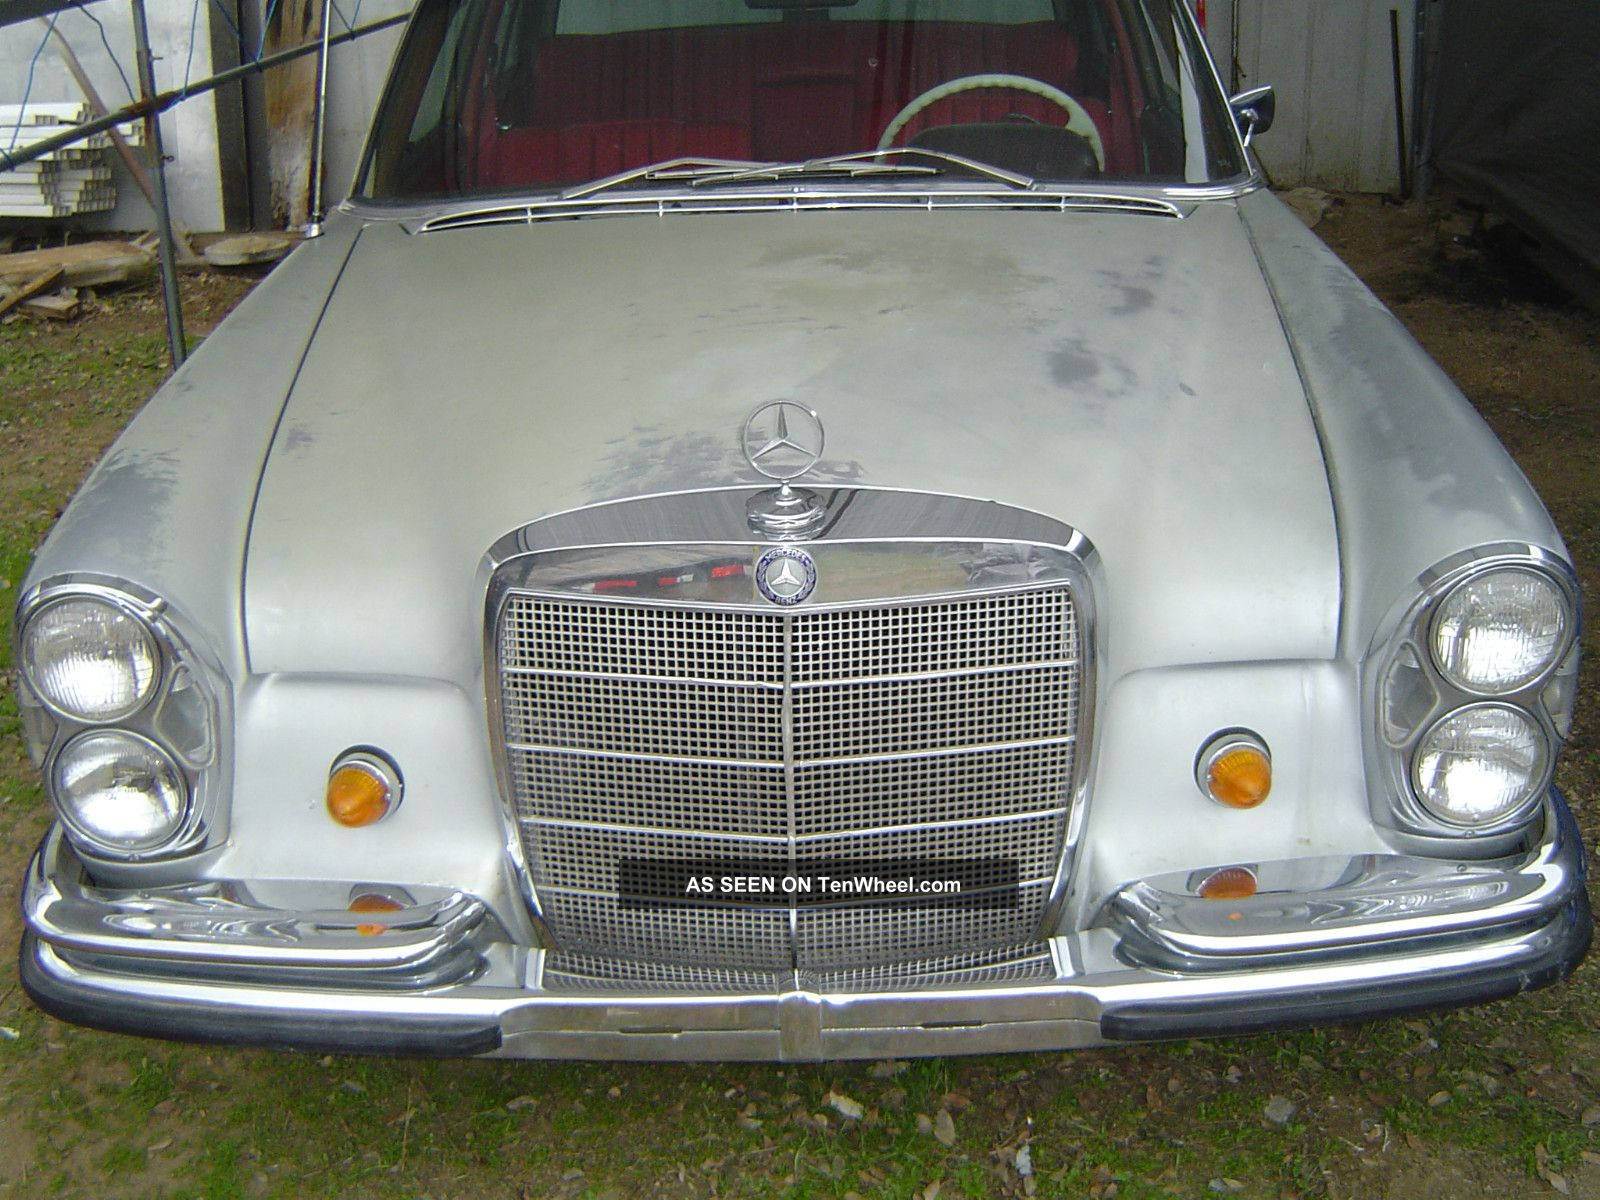 Mercedes Benz 1967 300 Sel W109 Chassis 6 Cylinder 4 Speed Manual 300-Series photo